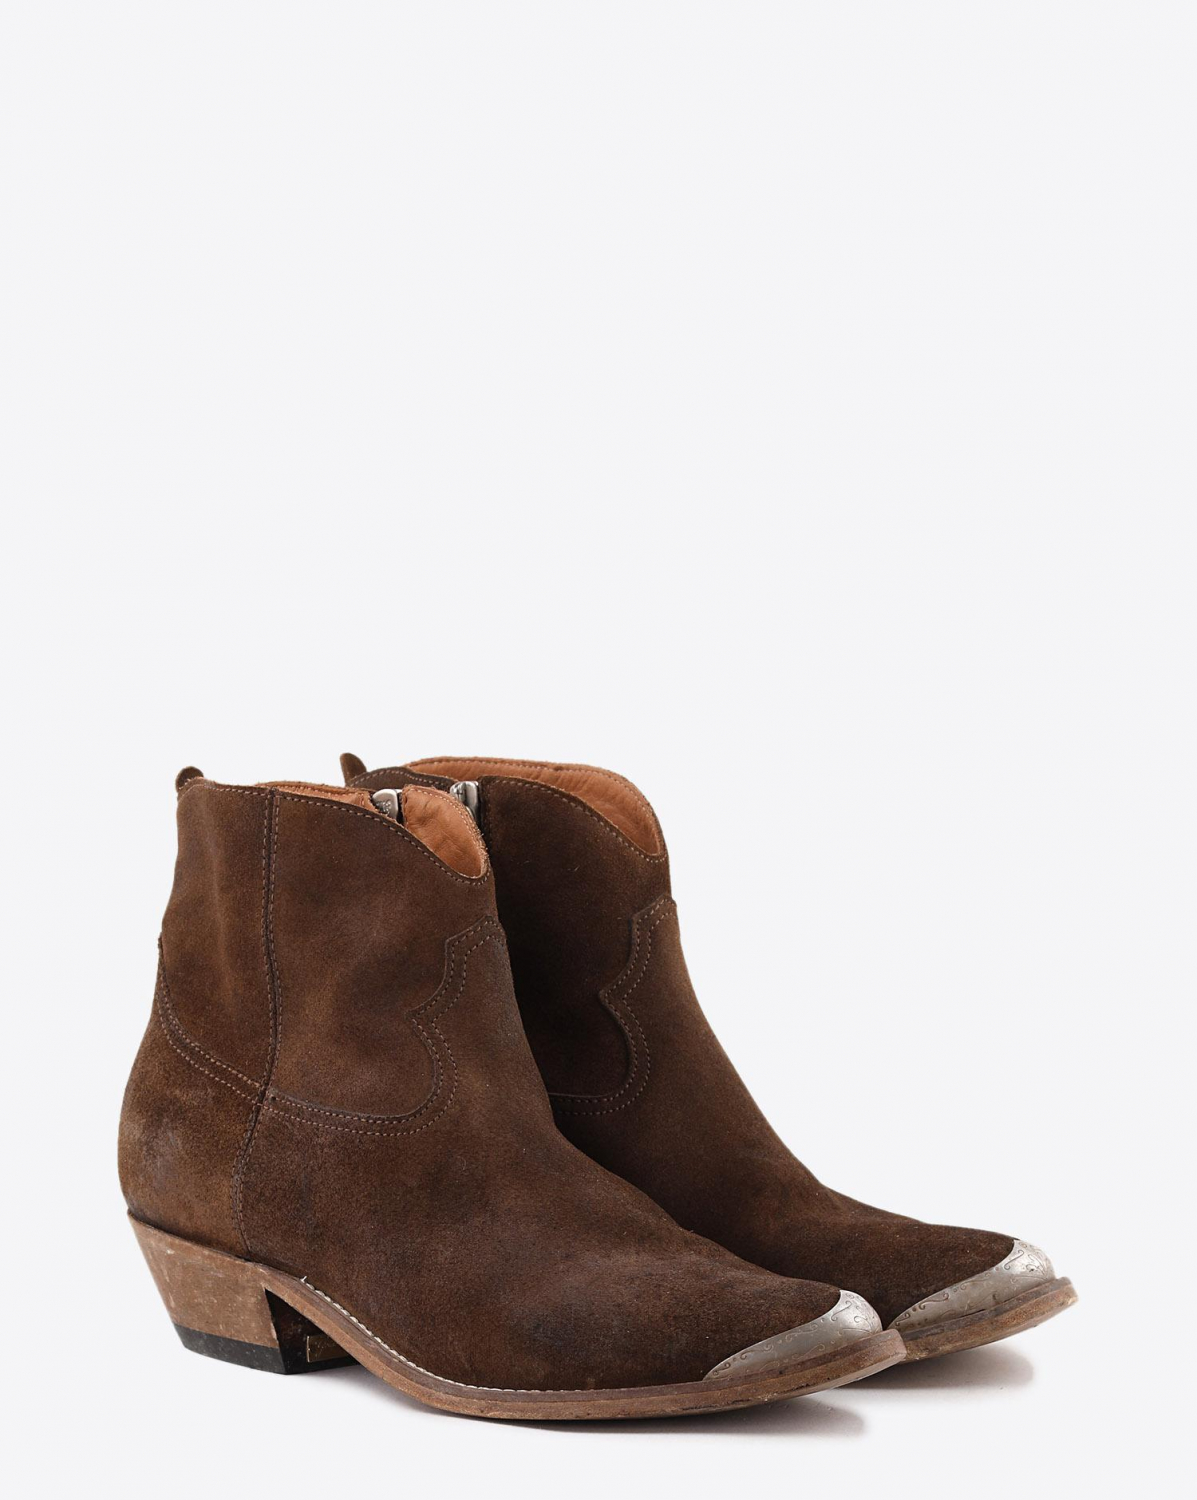 Golden Goose Woman Chaussures Pré-Collection Boots Young - Coffee Suede